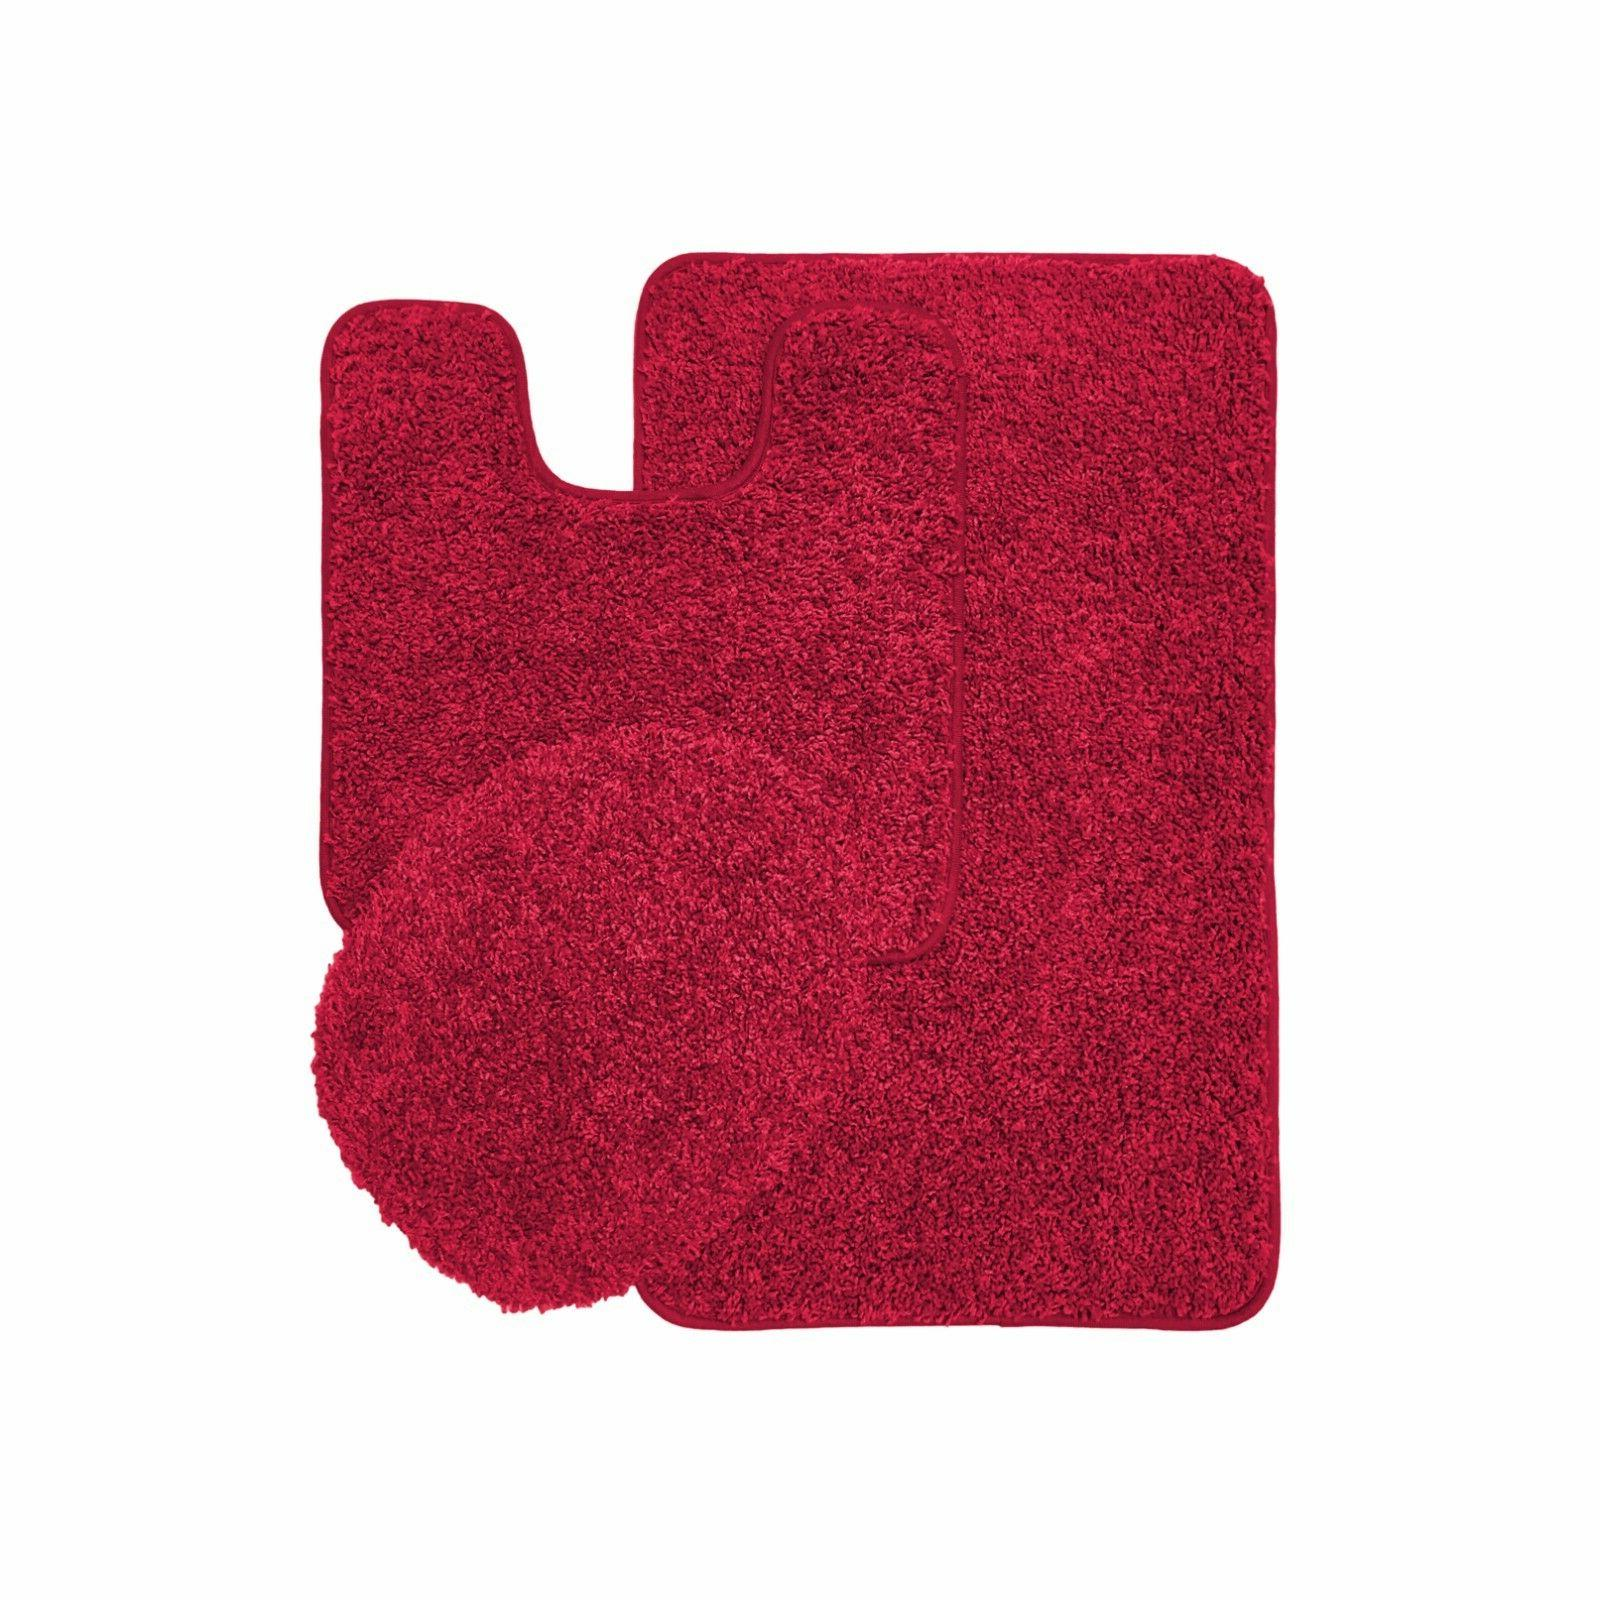 Layla Rug Mat, Contour Rug, Lid Cover, Solid